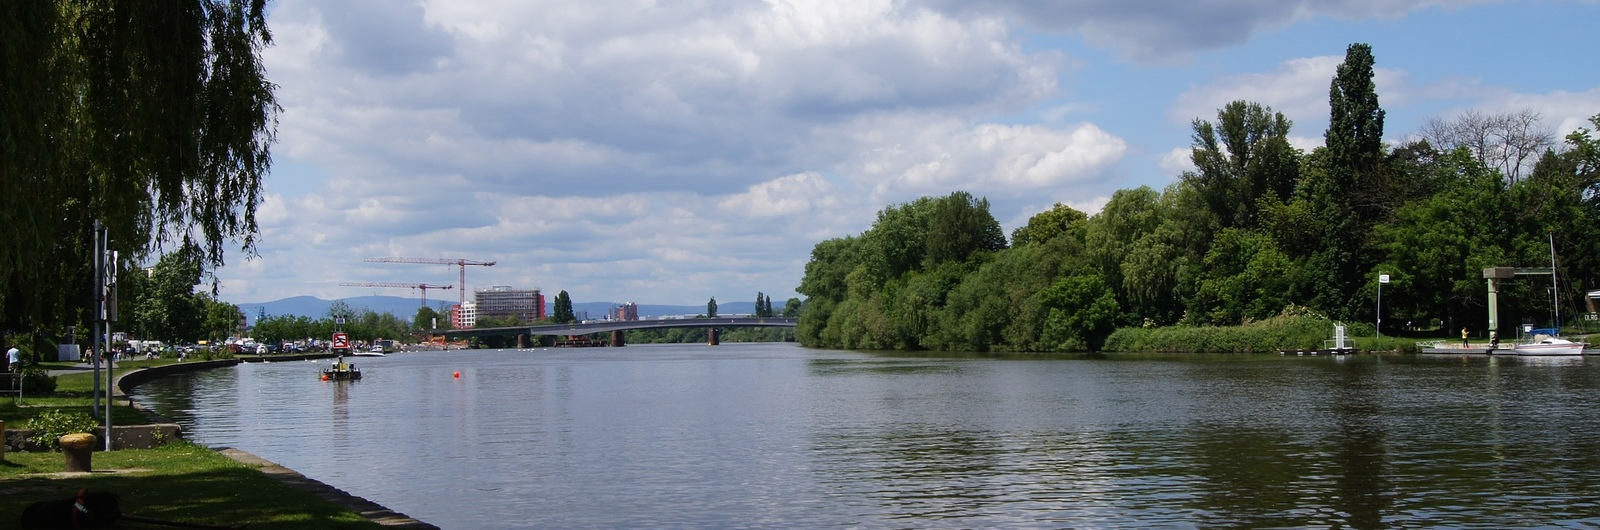 offenbach city header